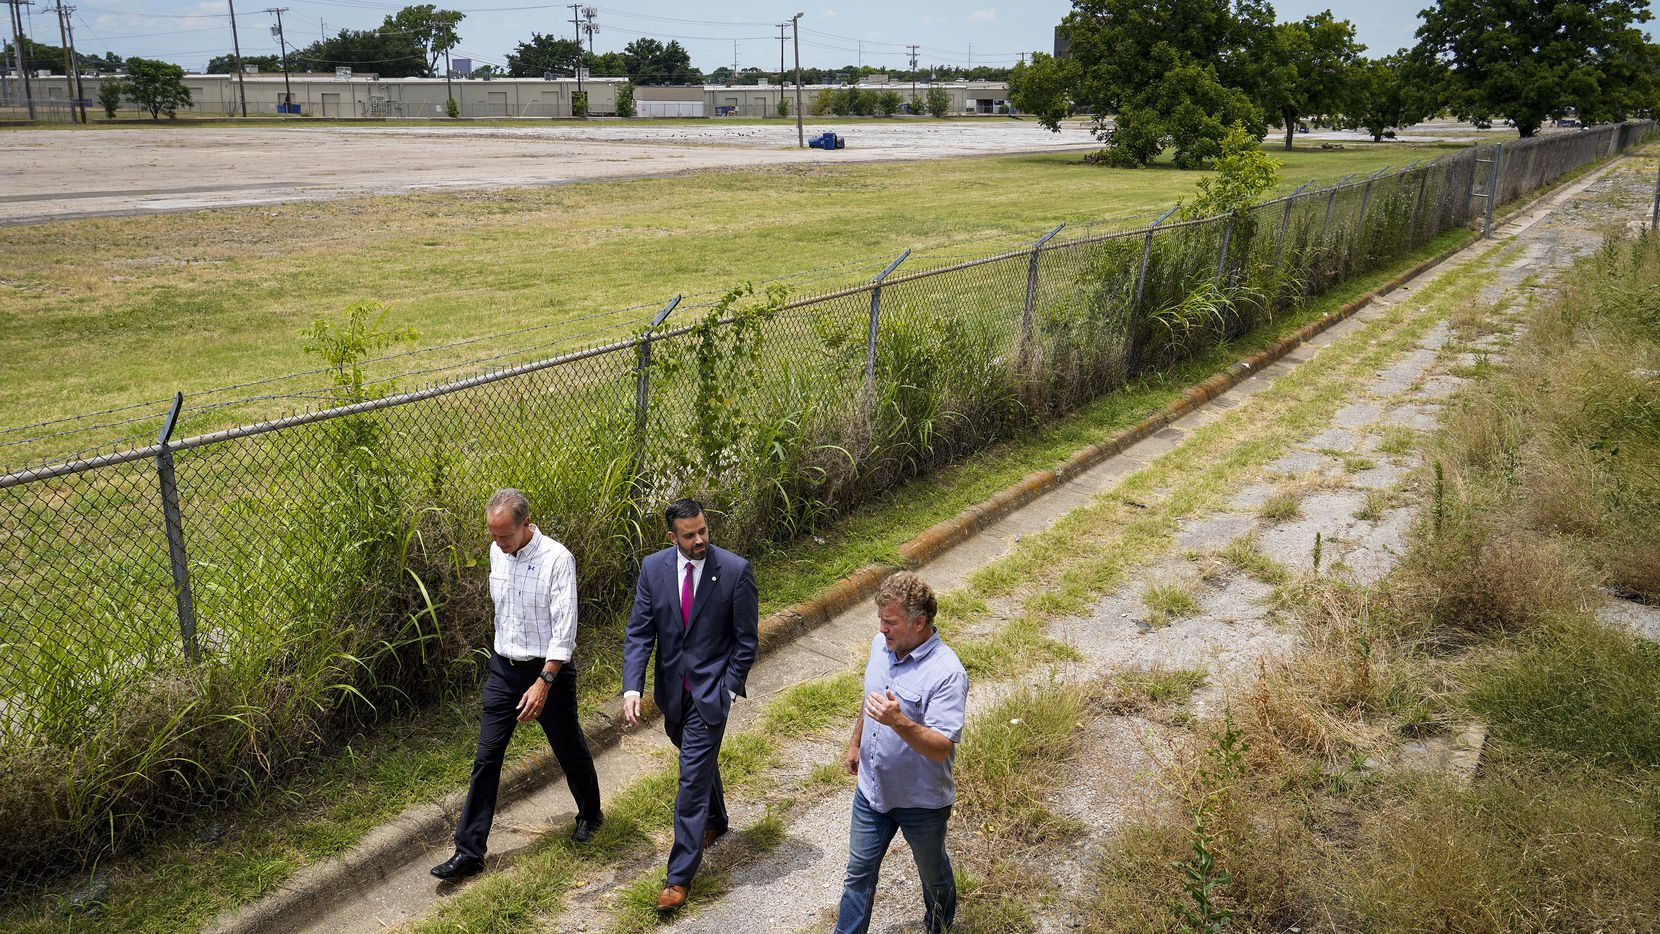 From left, City of Refuge Dallas CEO Mike Reinsel, Dallas City Council member Adam McGough and Bonton Farms founder Daron Babcock walk along the perimeter of a property at 12000 Greenville Avenue where they hope to create Bonton Village @ Lake Highlands.